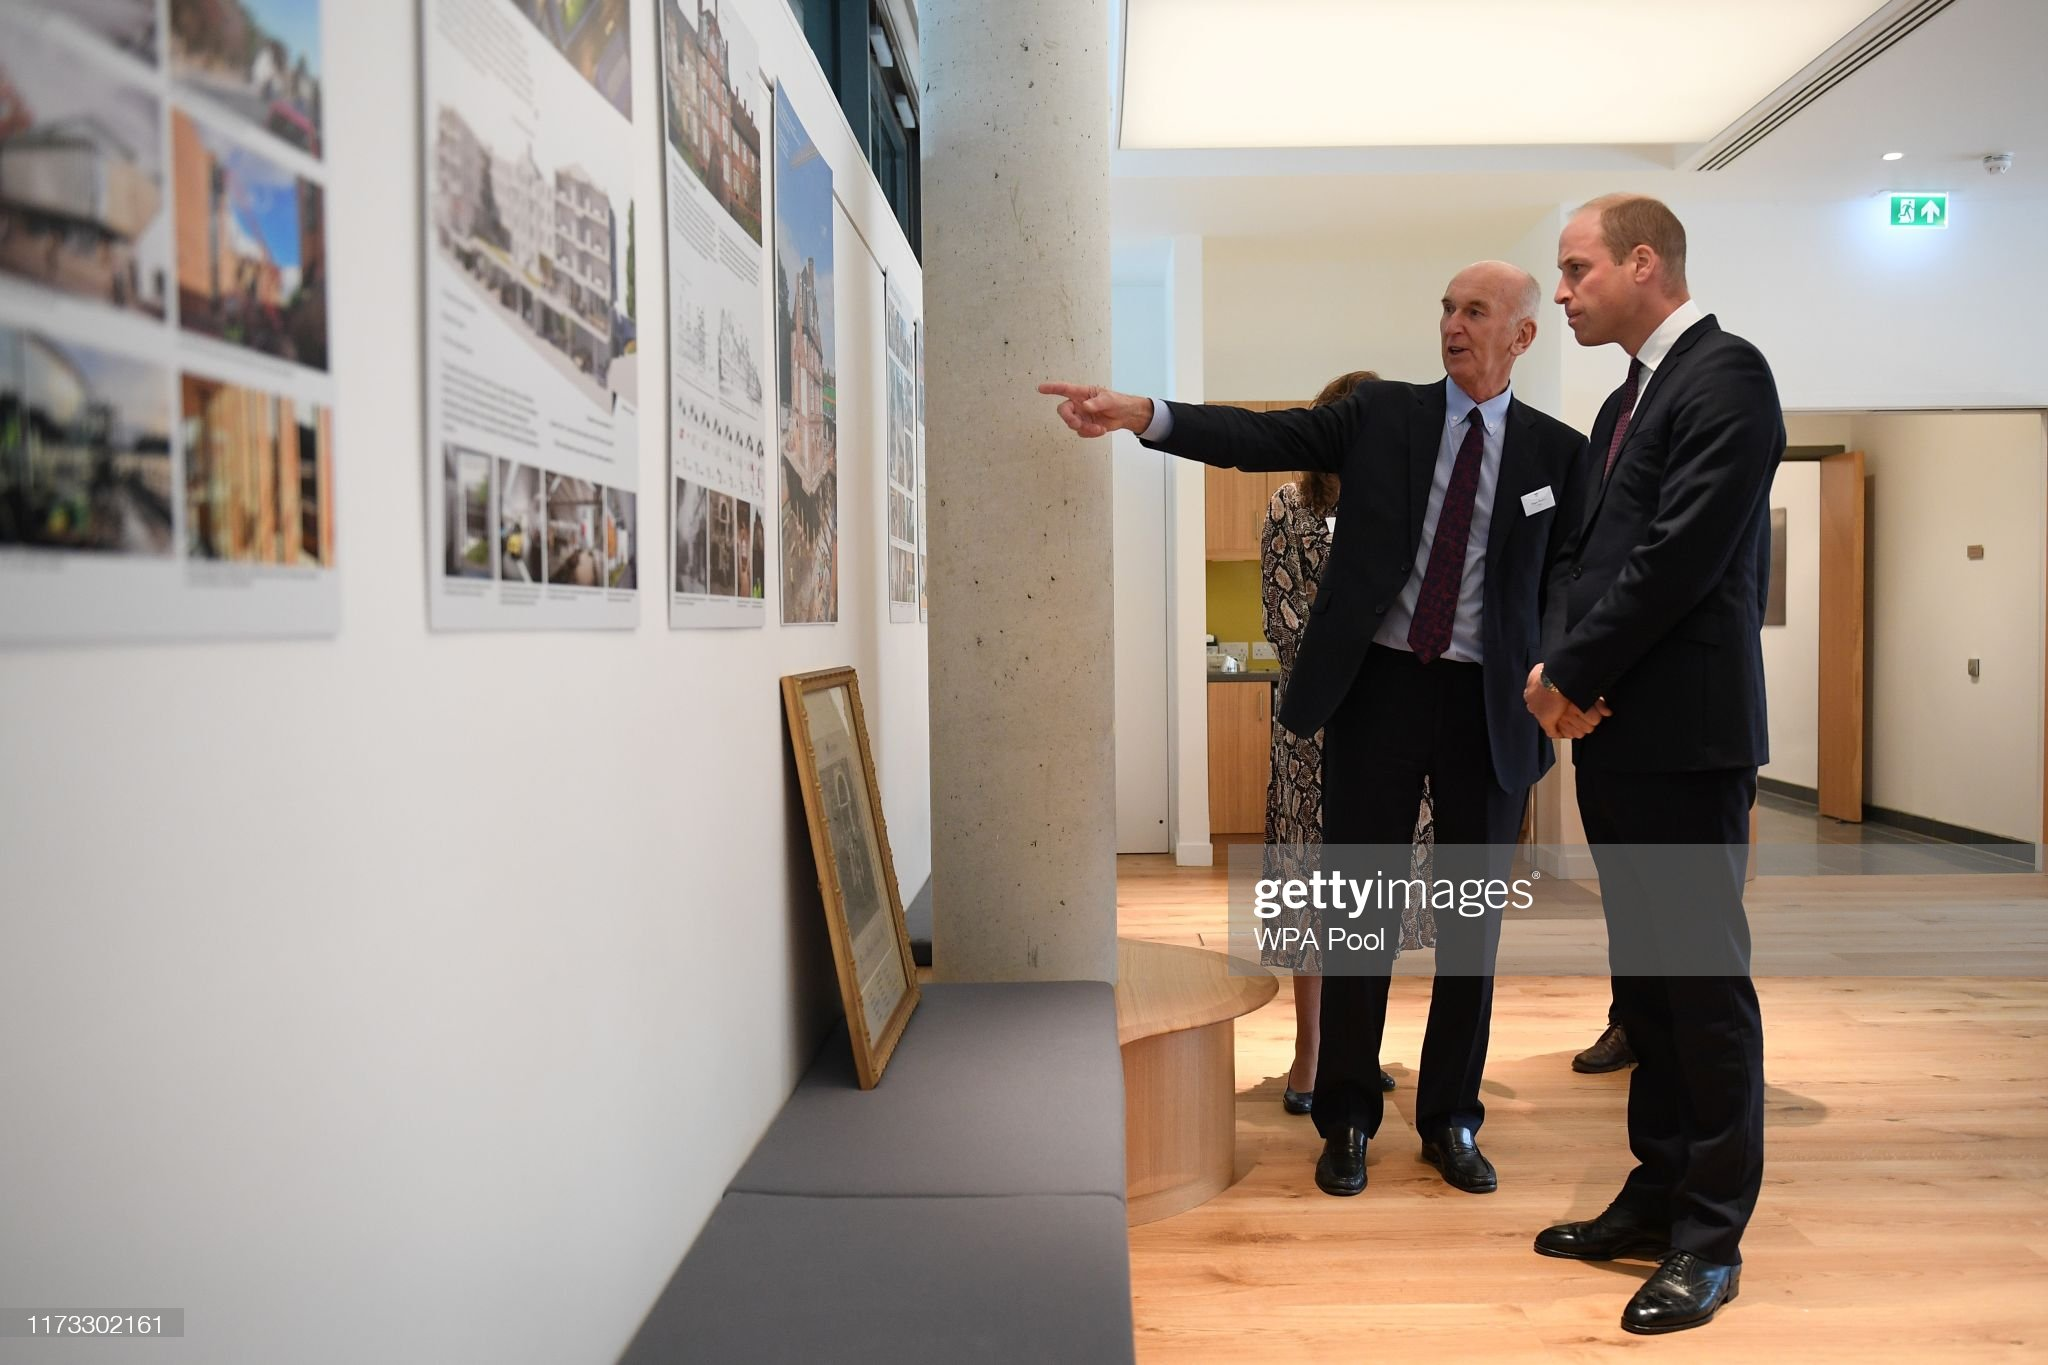 prince-william-duke-of-cambridge-listens-as-the-warden-of-keble-picture-id1173302161